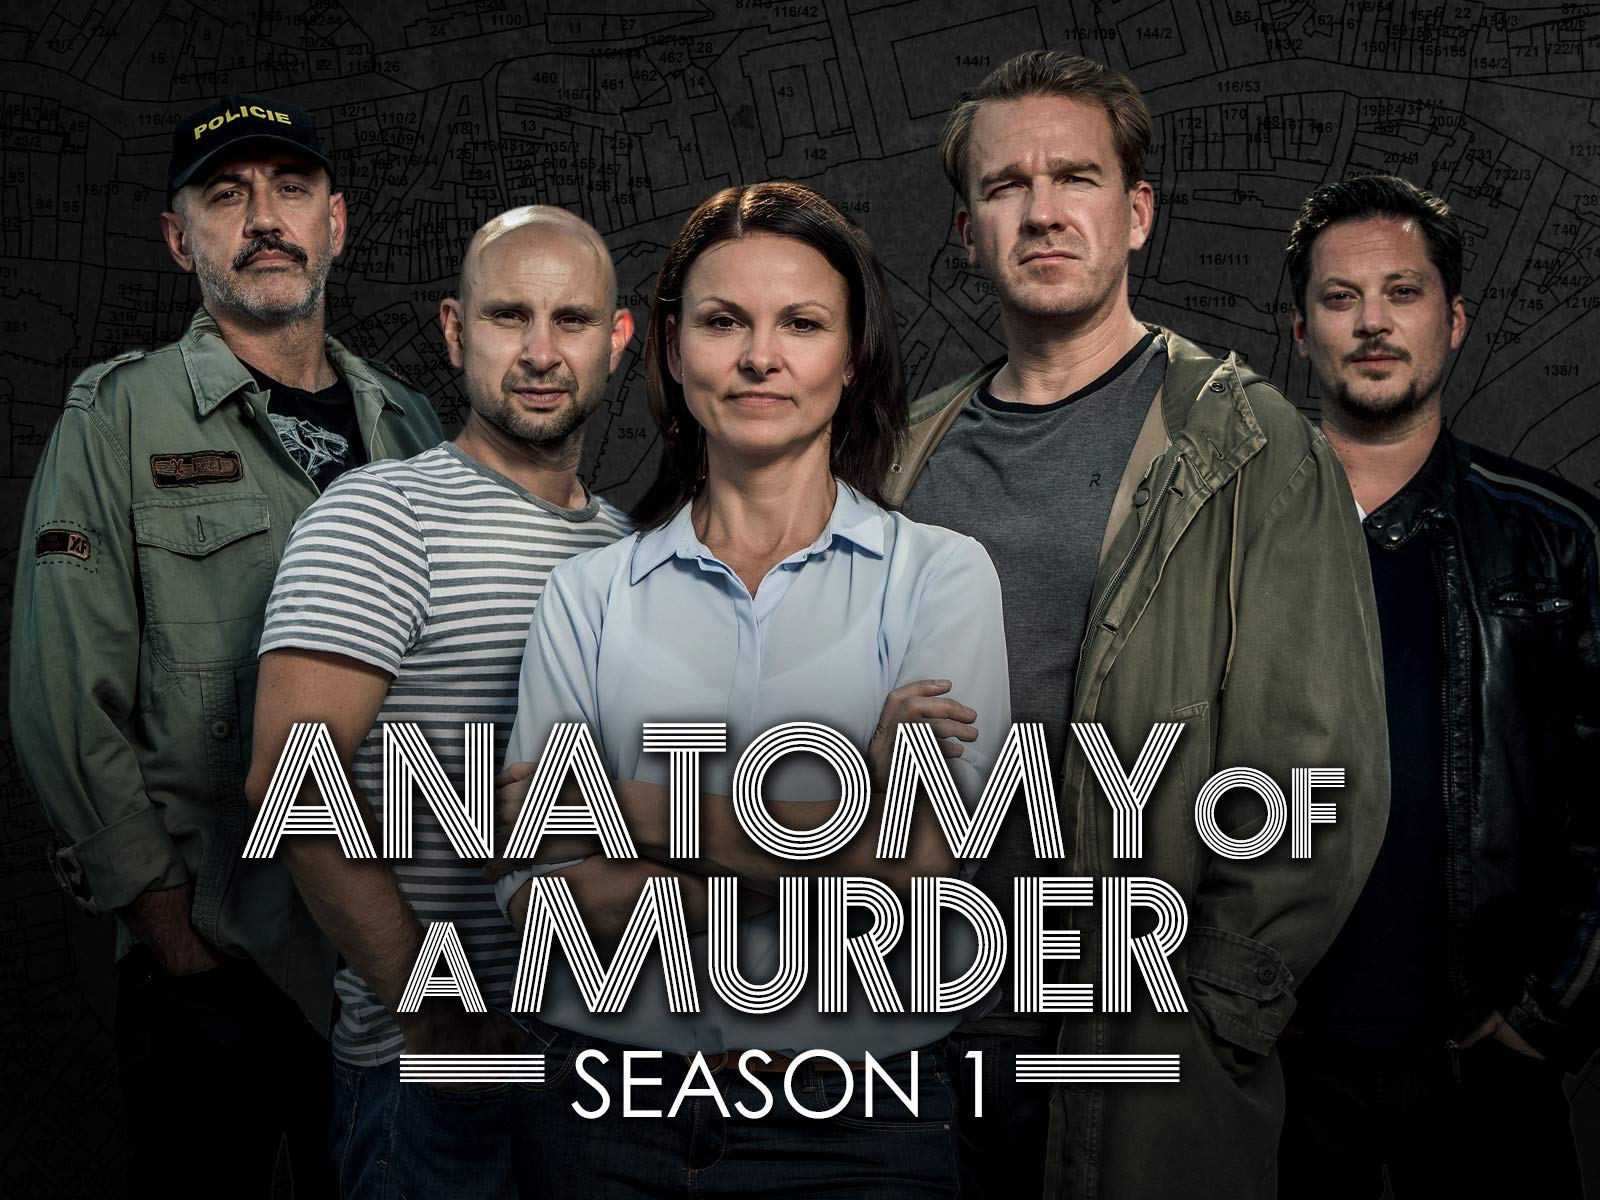 Anatomy of a murder - Season 1